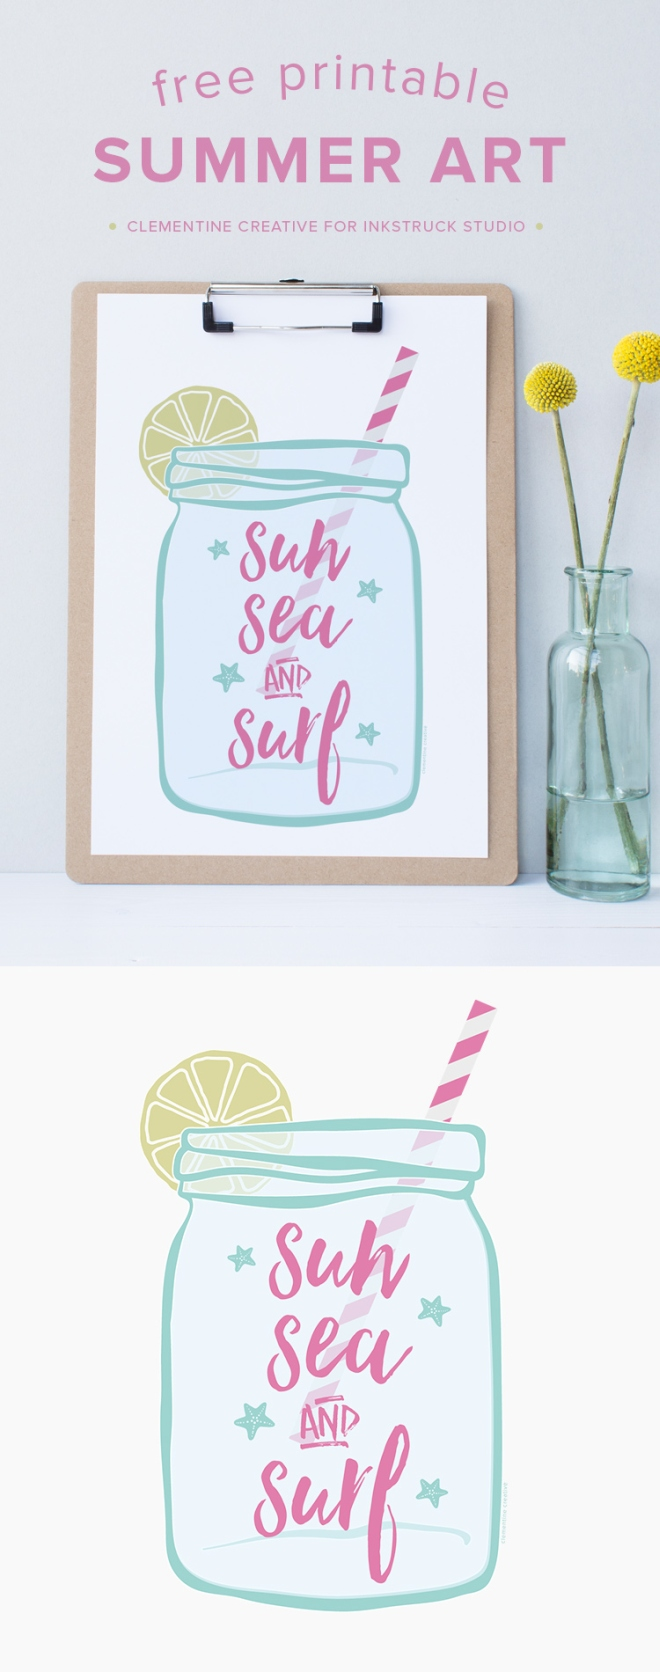 Download this free summer art print here and add summer to your home!